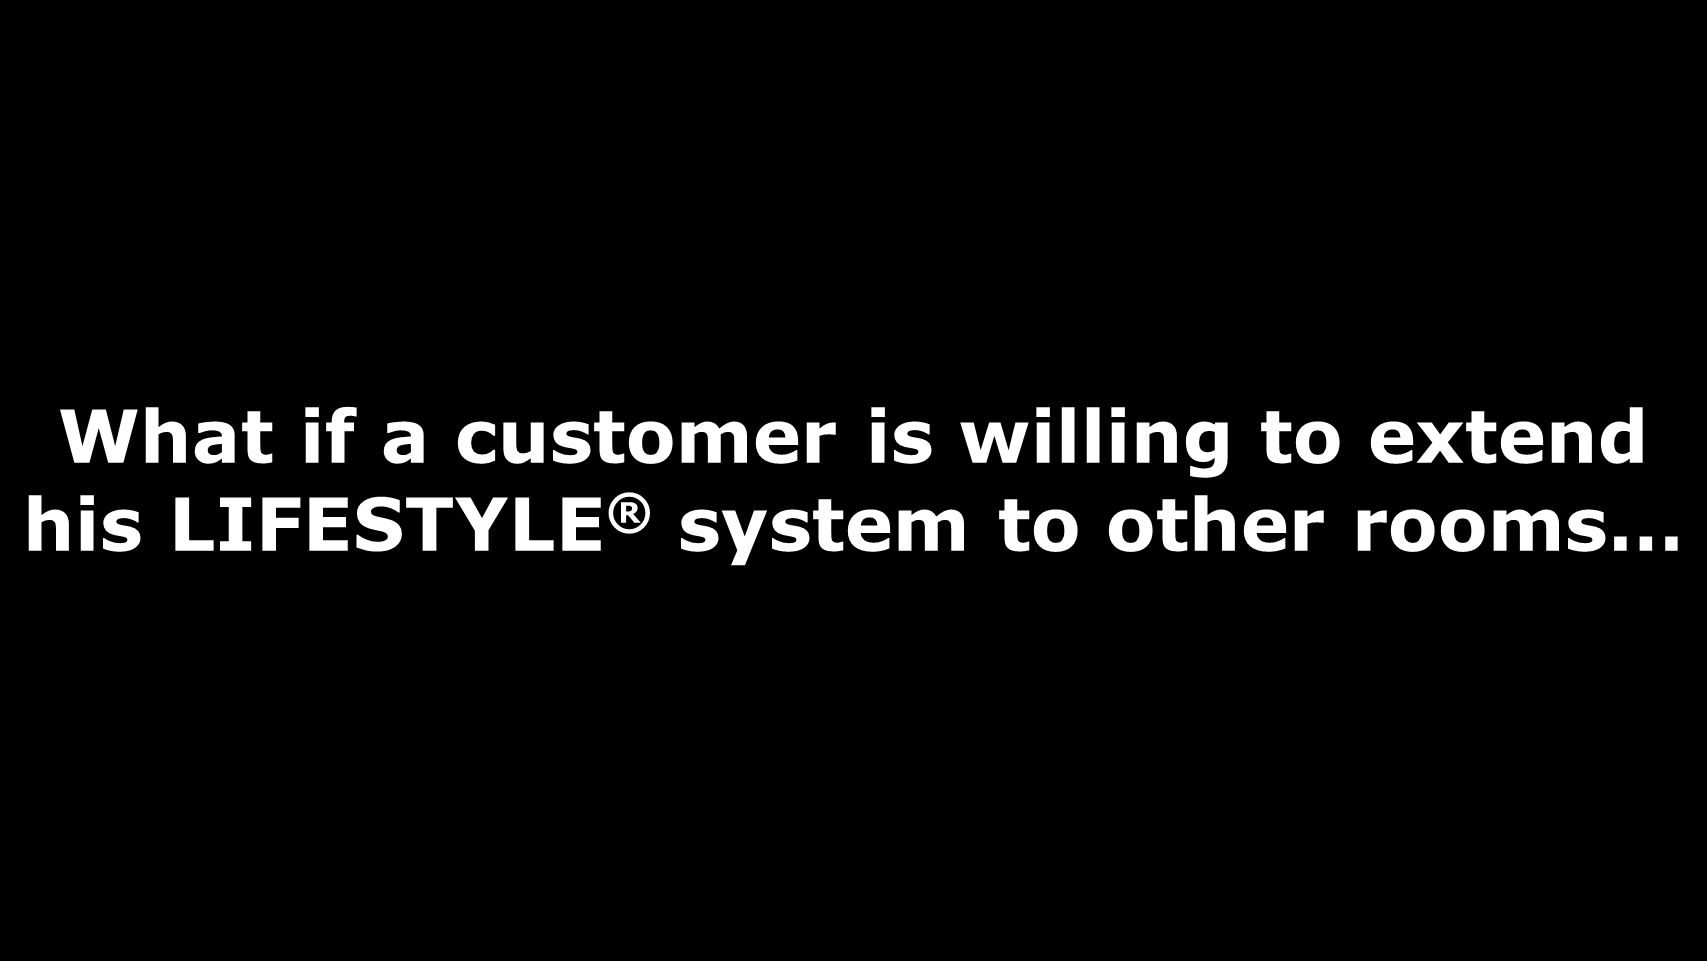 What if a customer is willing to extend his LIFESTYLE® system to other rooms…